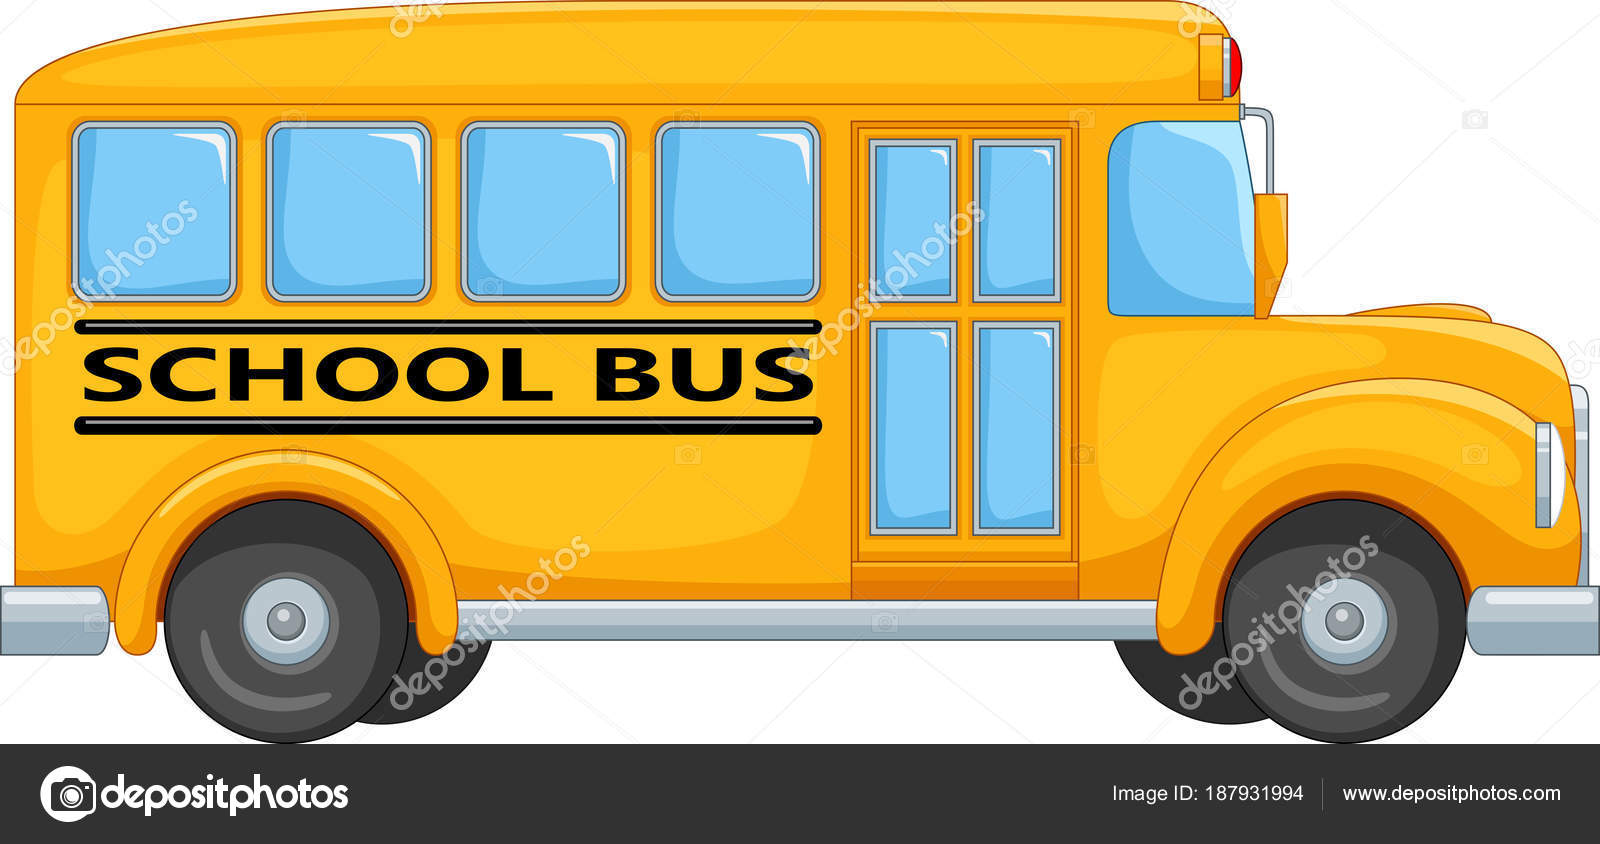 how to draw a school bus cartoon